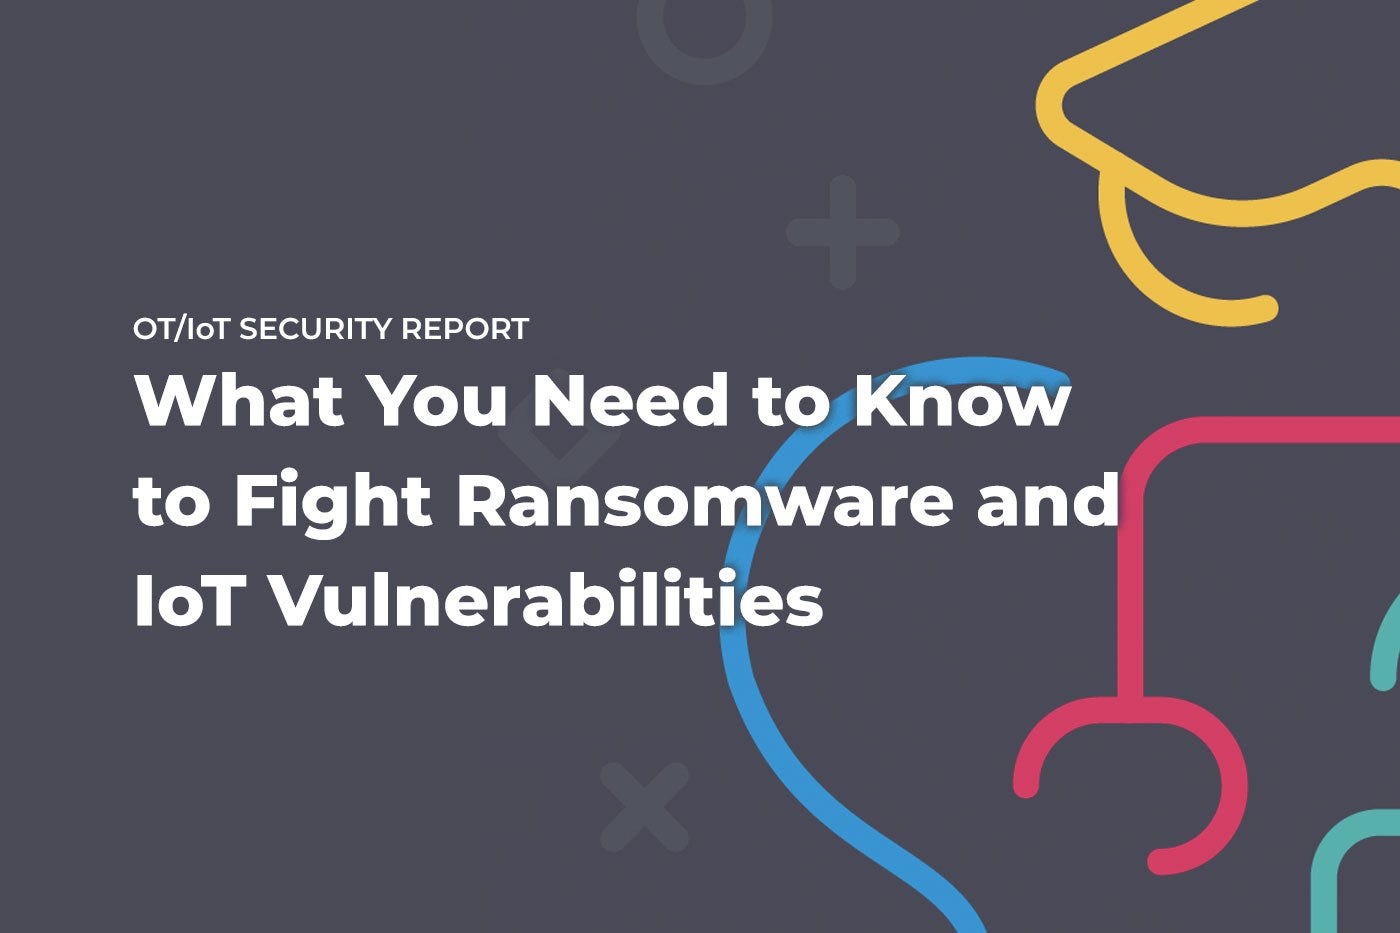 New Report: Ransomware, Vulnerabilities and IoT Security Threats